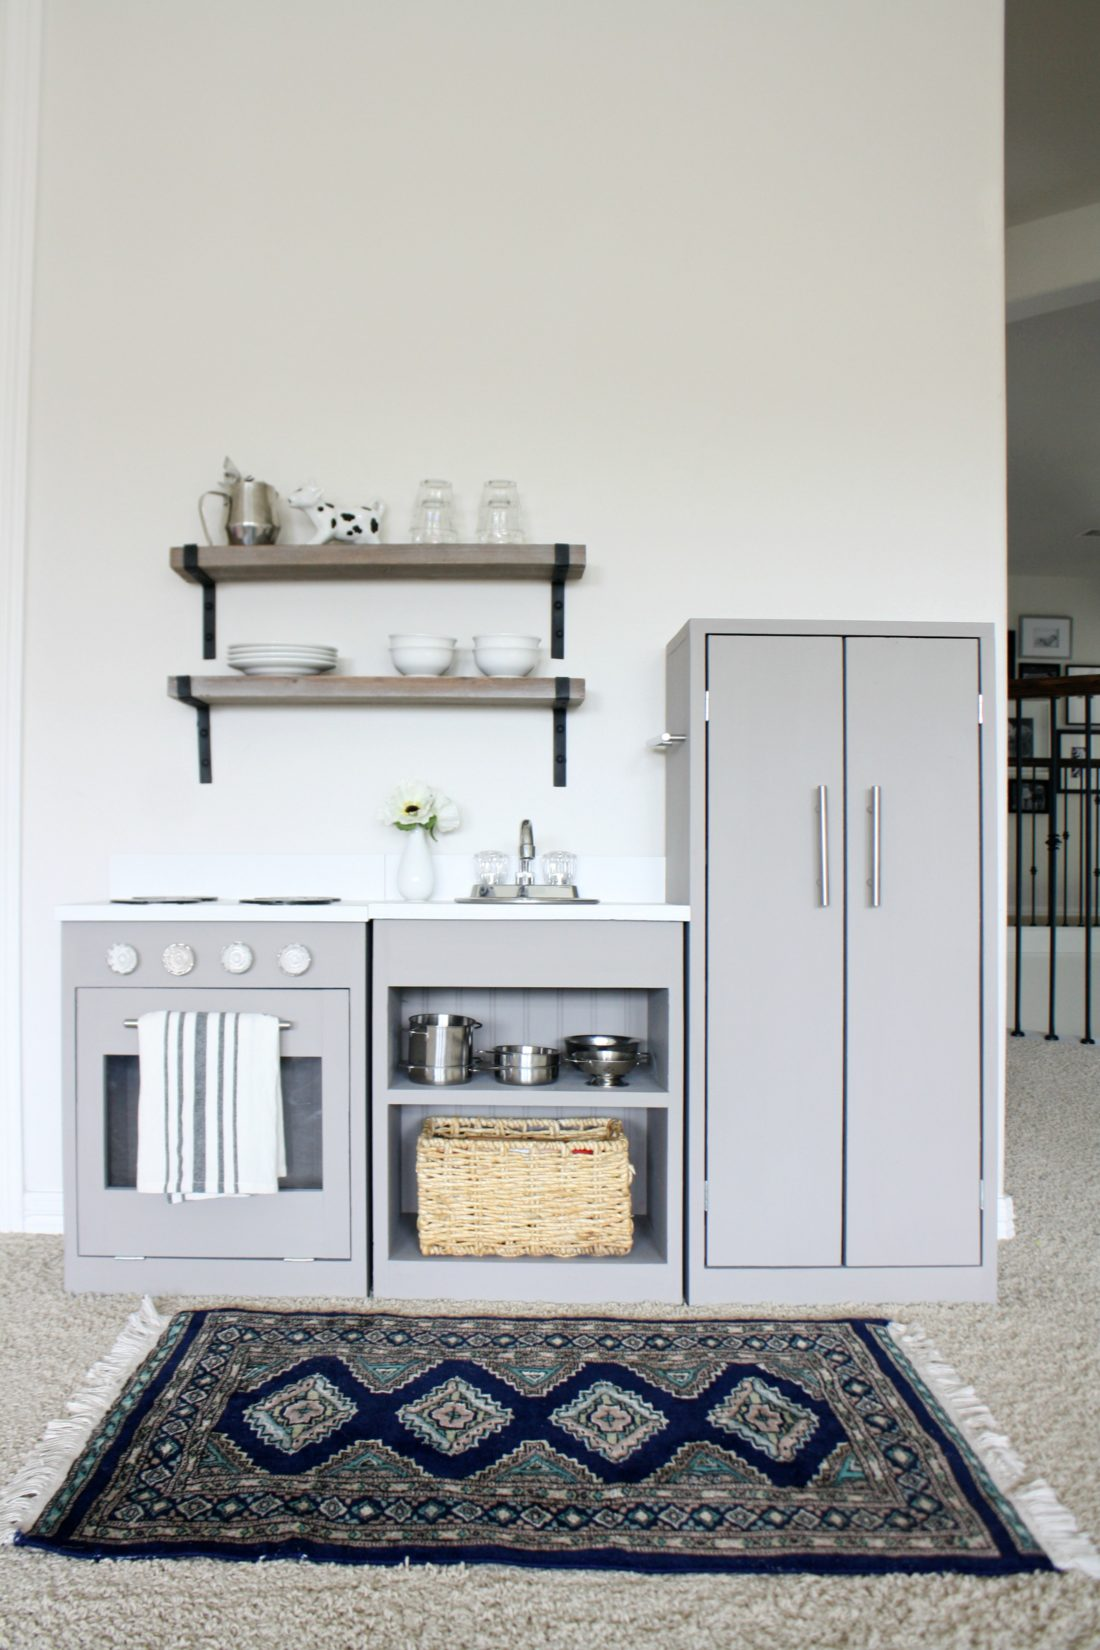 I Used This Play Kitchen From Pottery Barn As My Inspiration. Holy Cow,  What A Cute Kitchen It Turned Into!